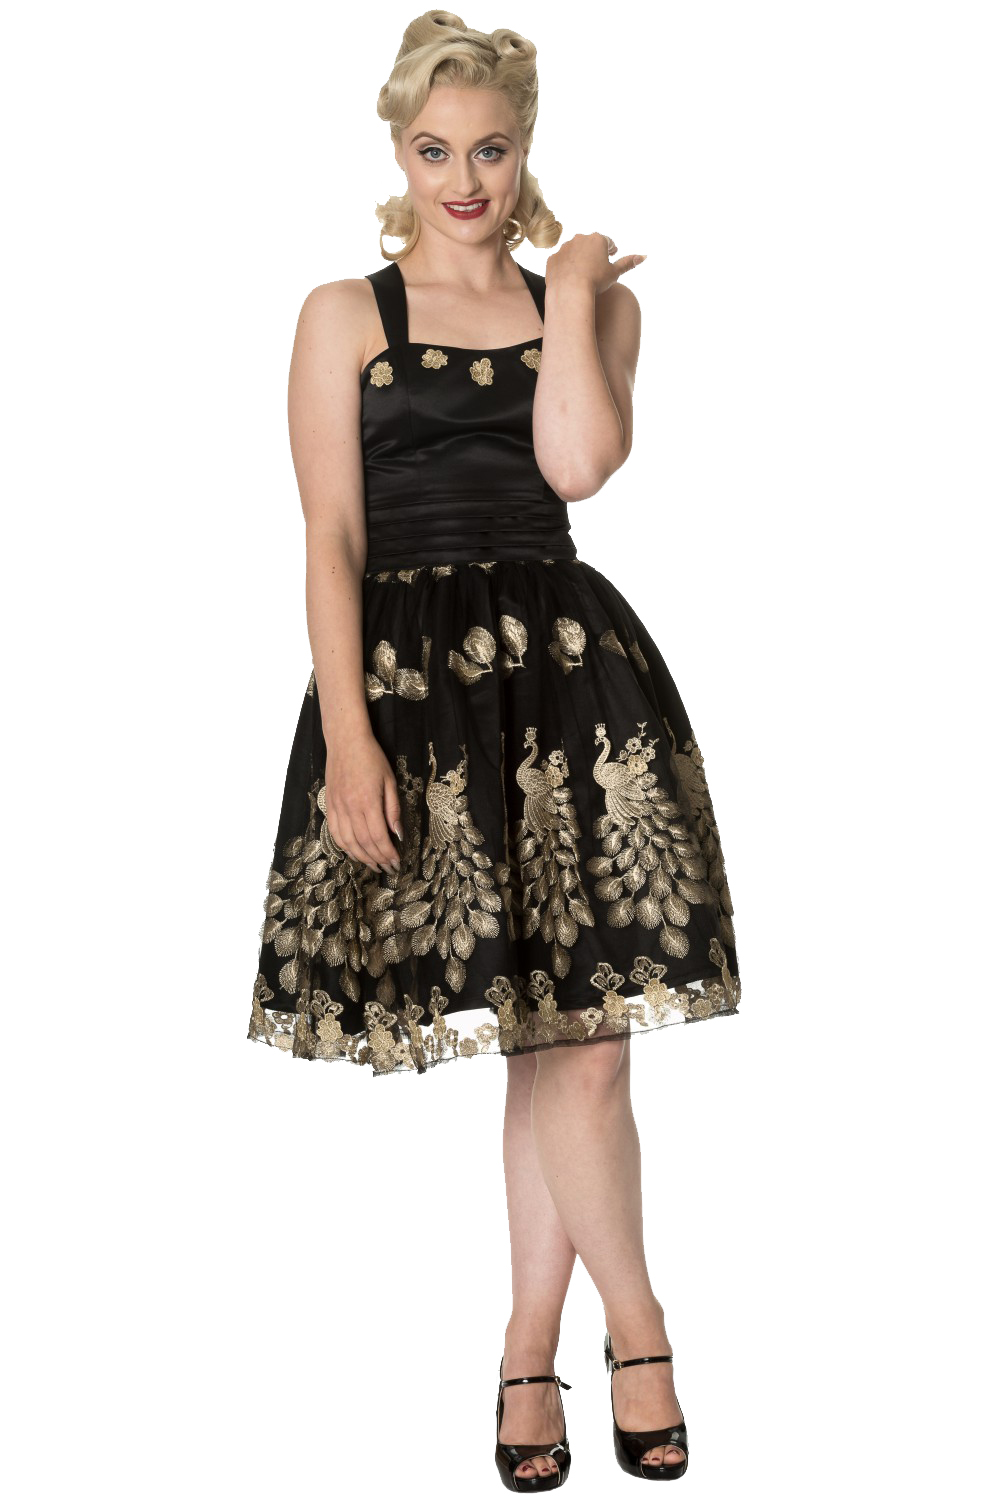 ancing Days Moonlight Escape Black Prom Dress